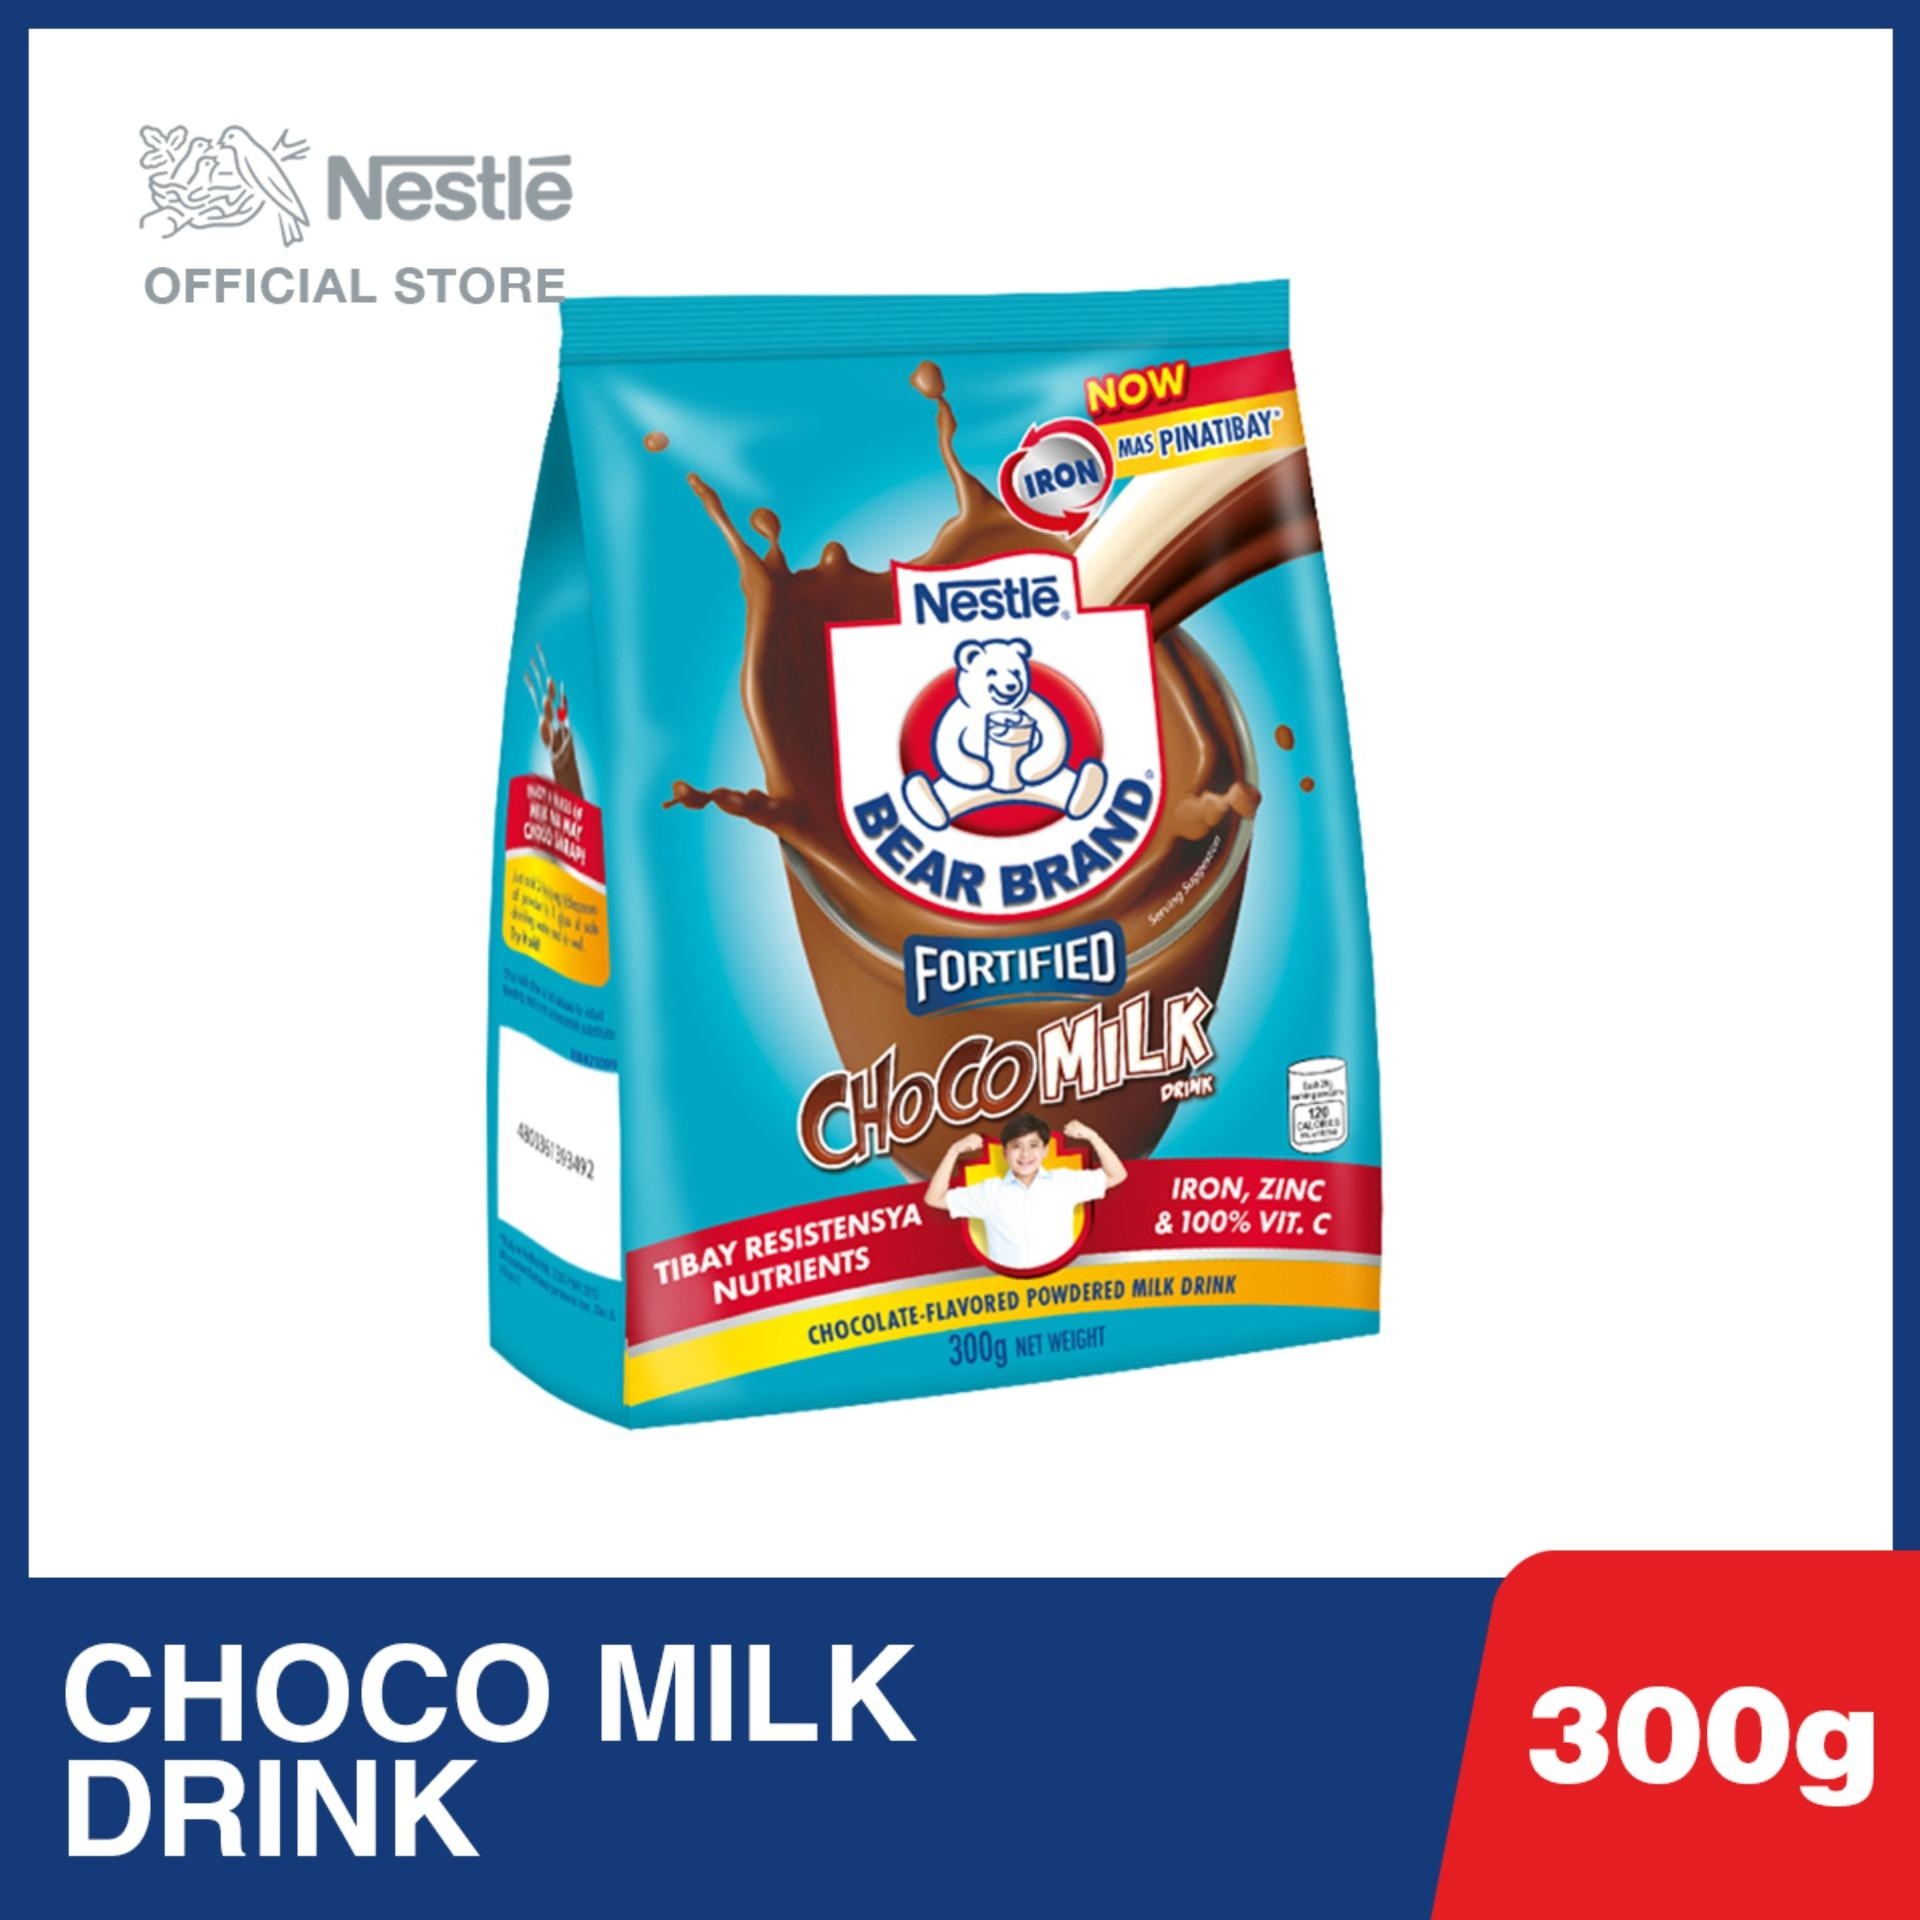 Bear Brand Choco Milk Drink 300g By Nestle Official Store.